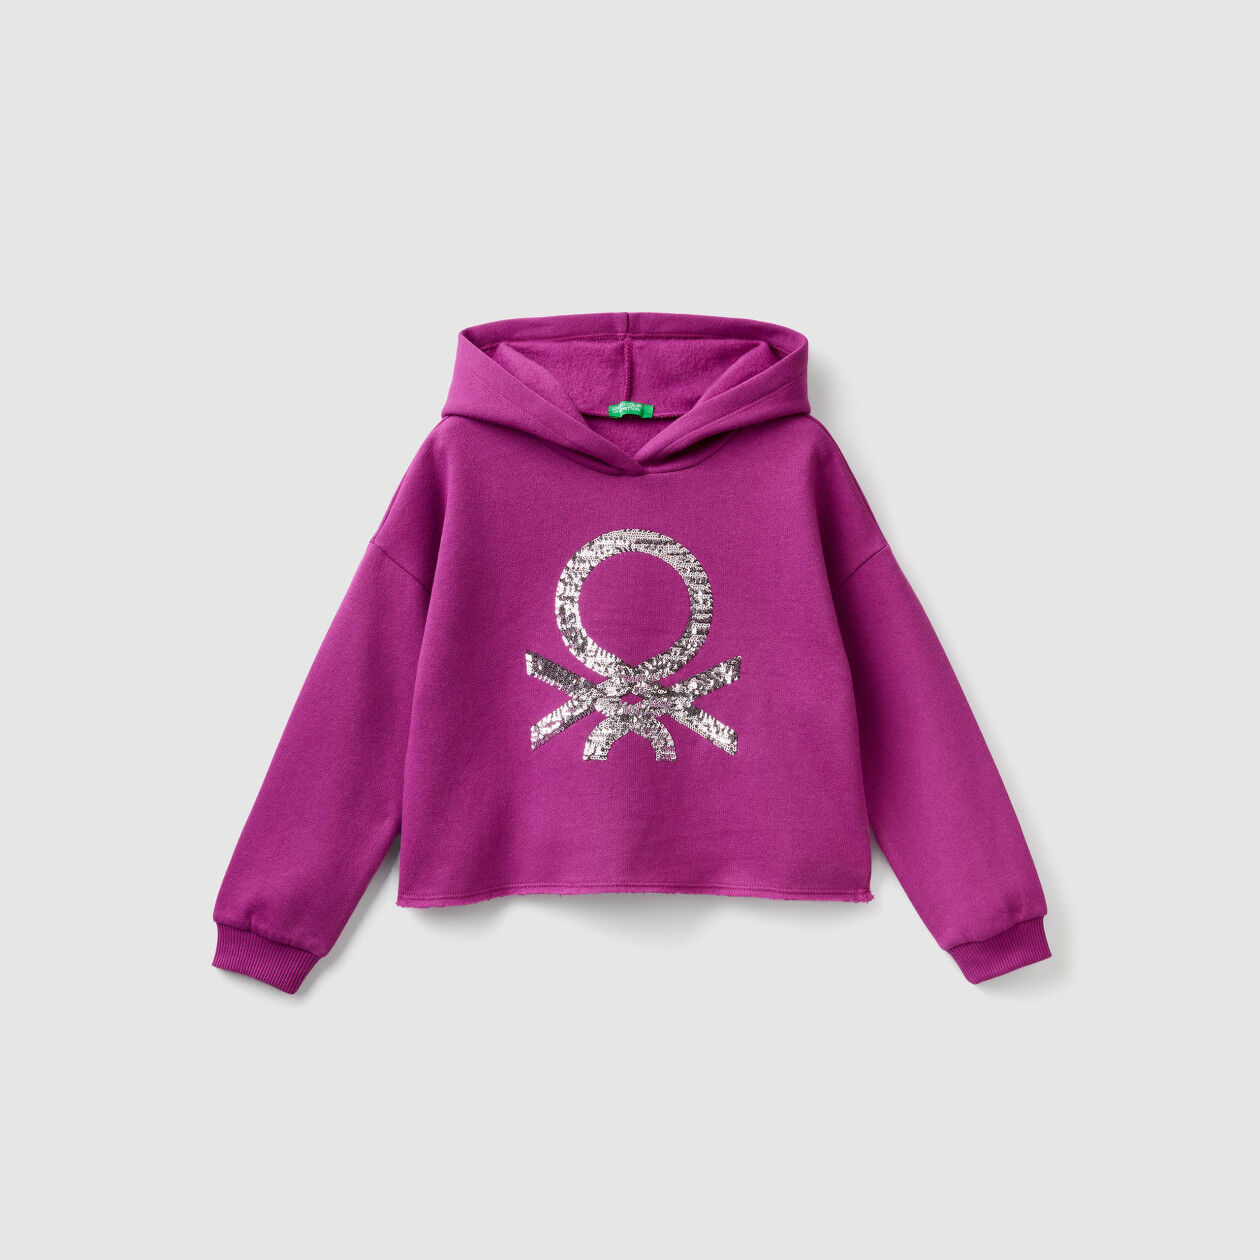 Hoodie with sequins